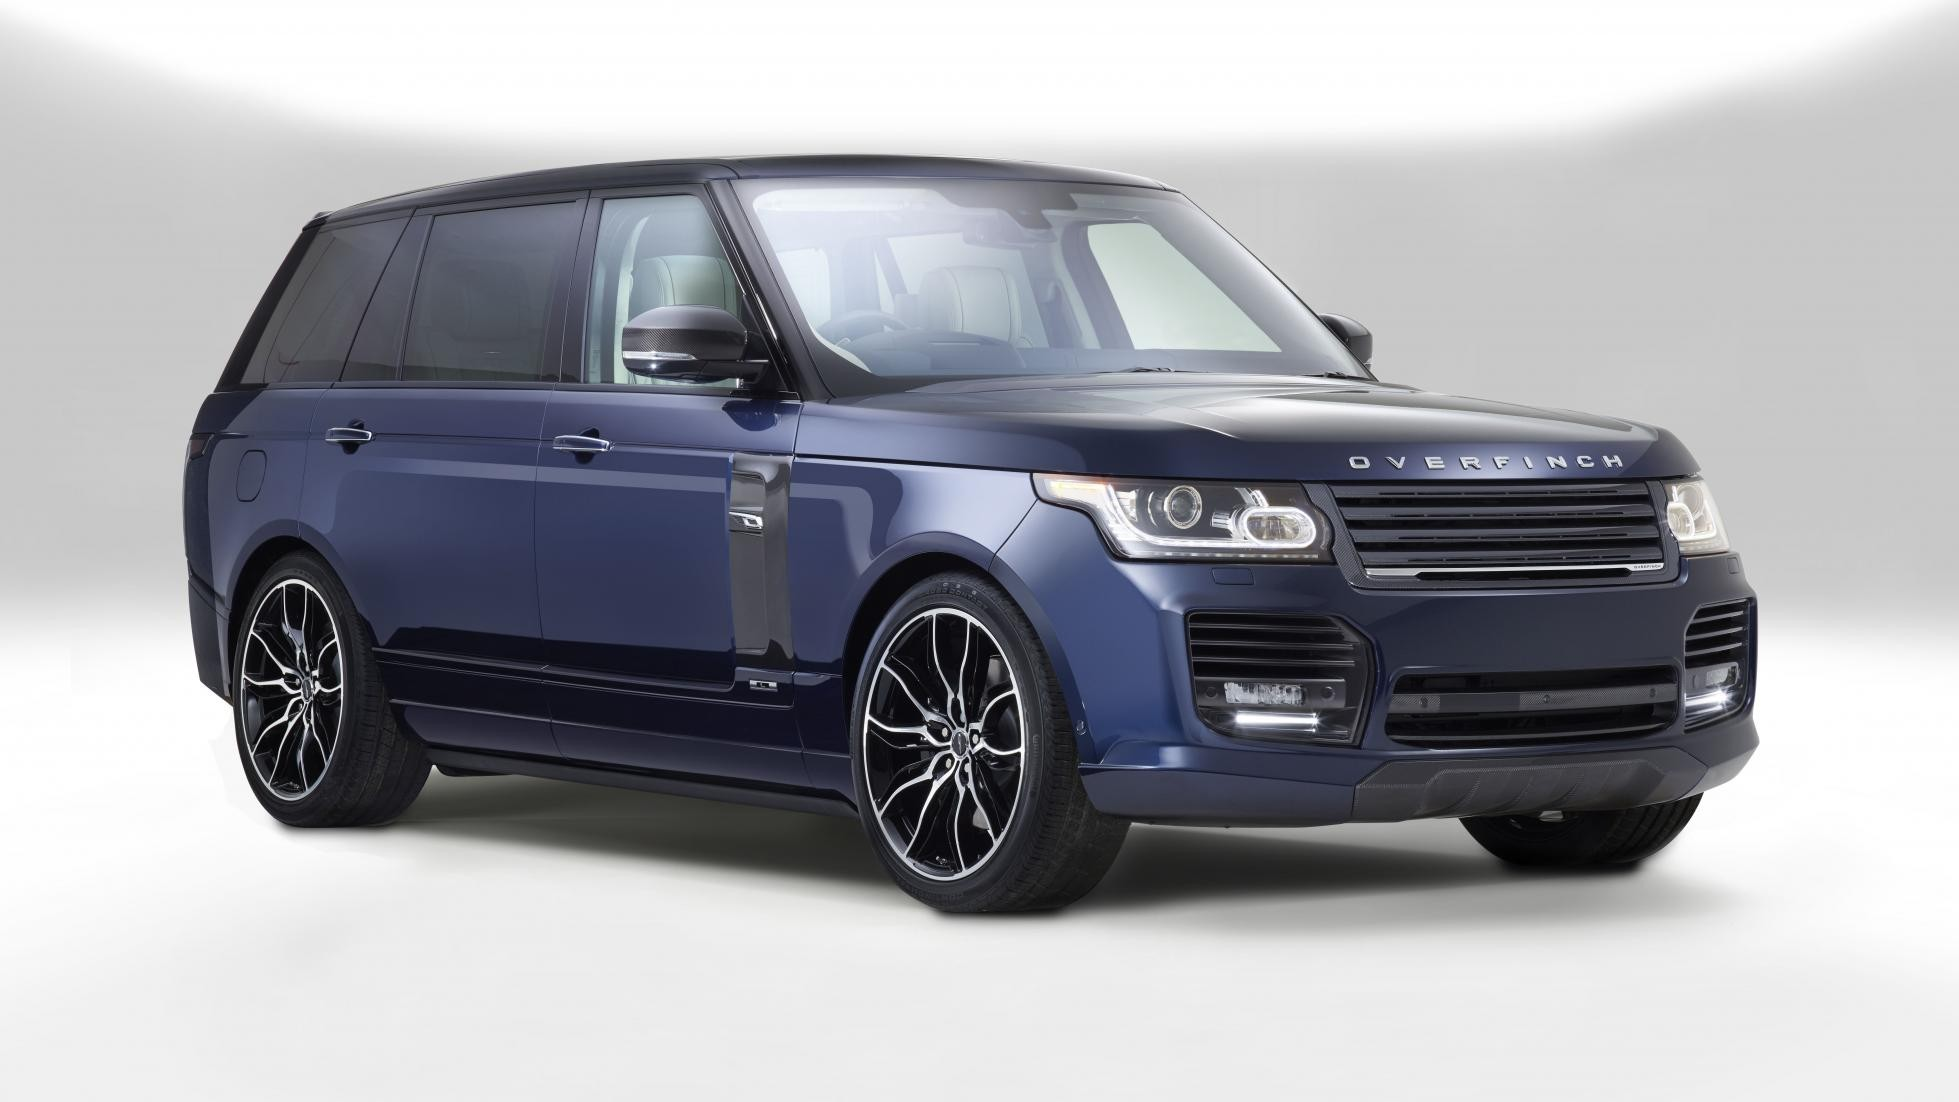 Overfinch Range Rover London Edition